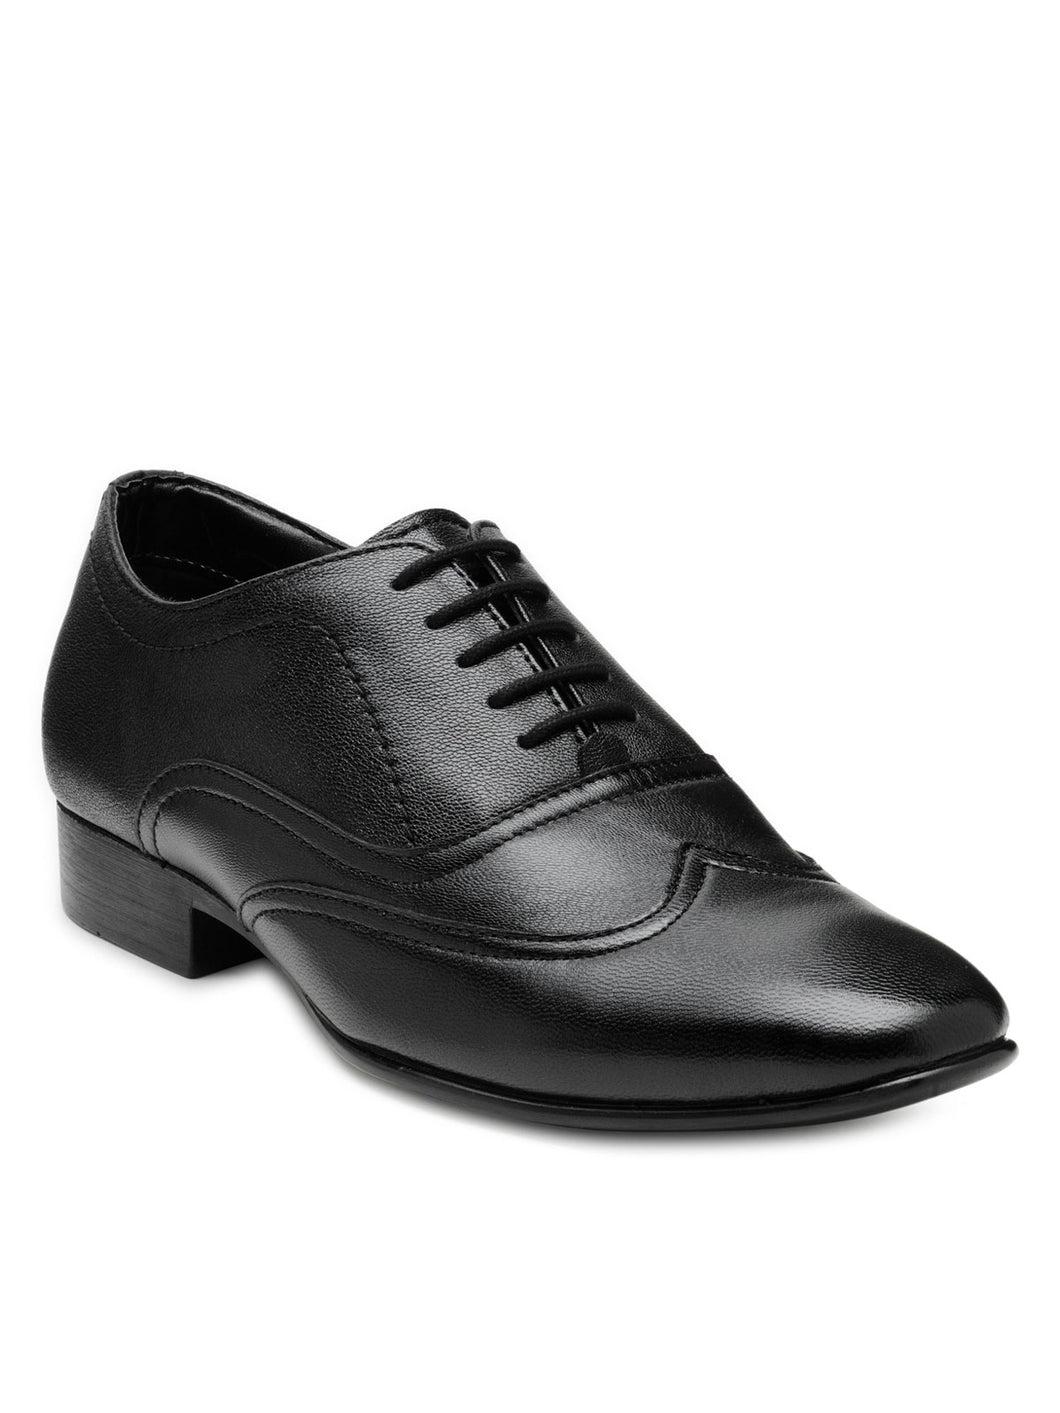 Teakwood Leather Men's Black Derby Shoes